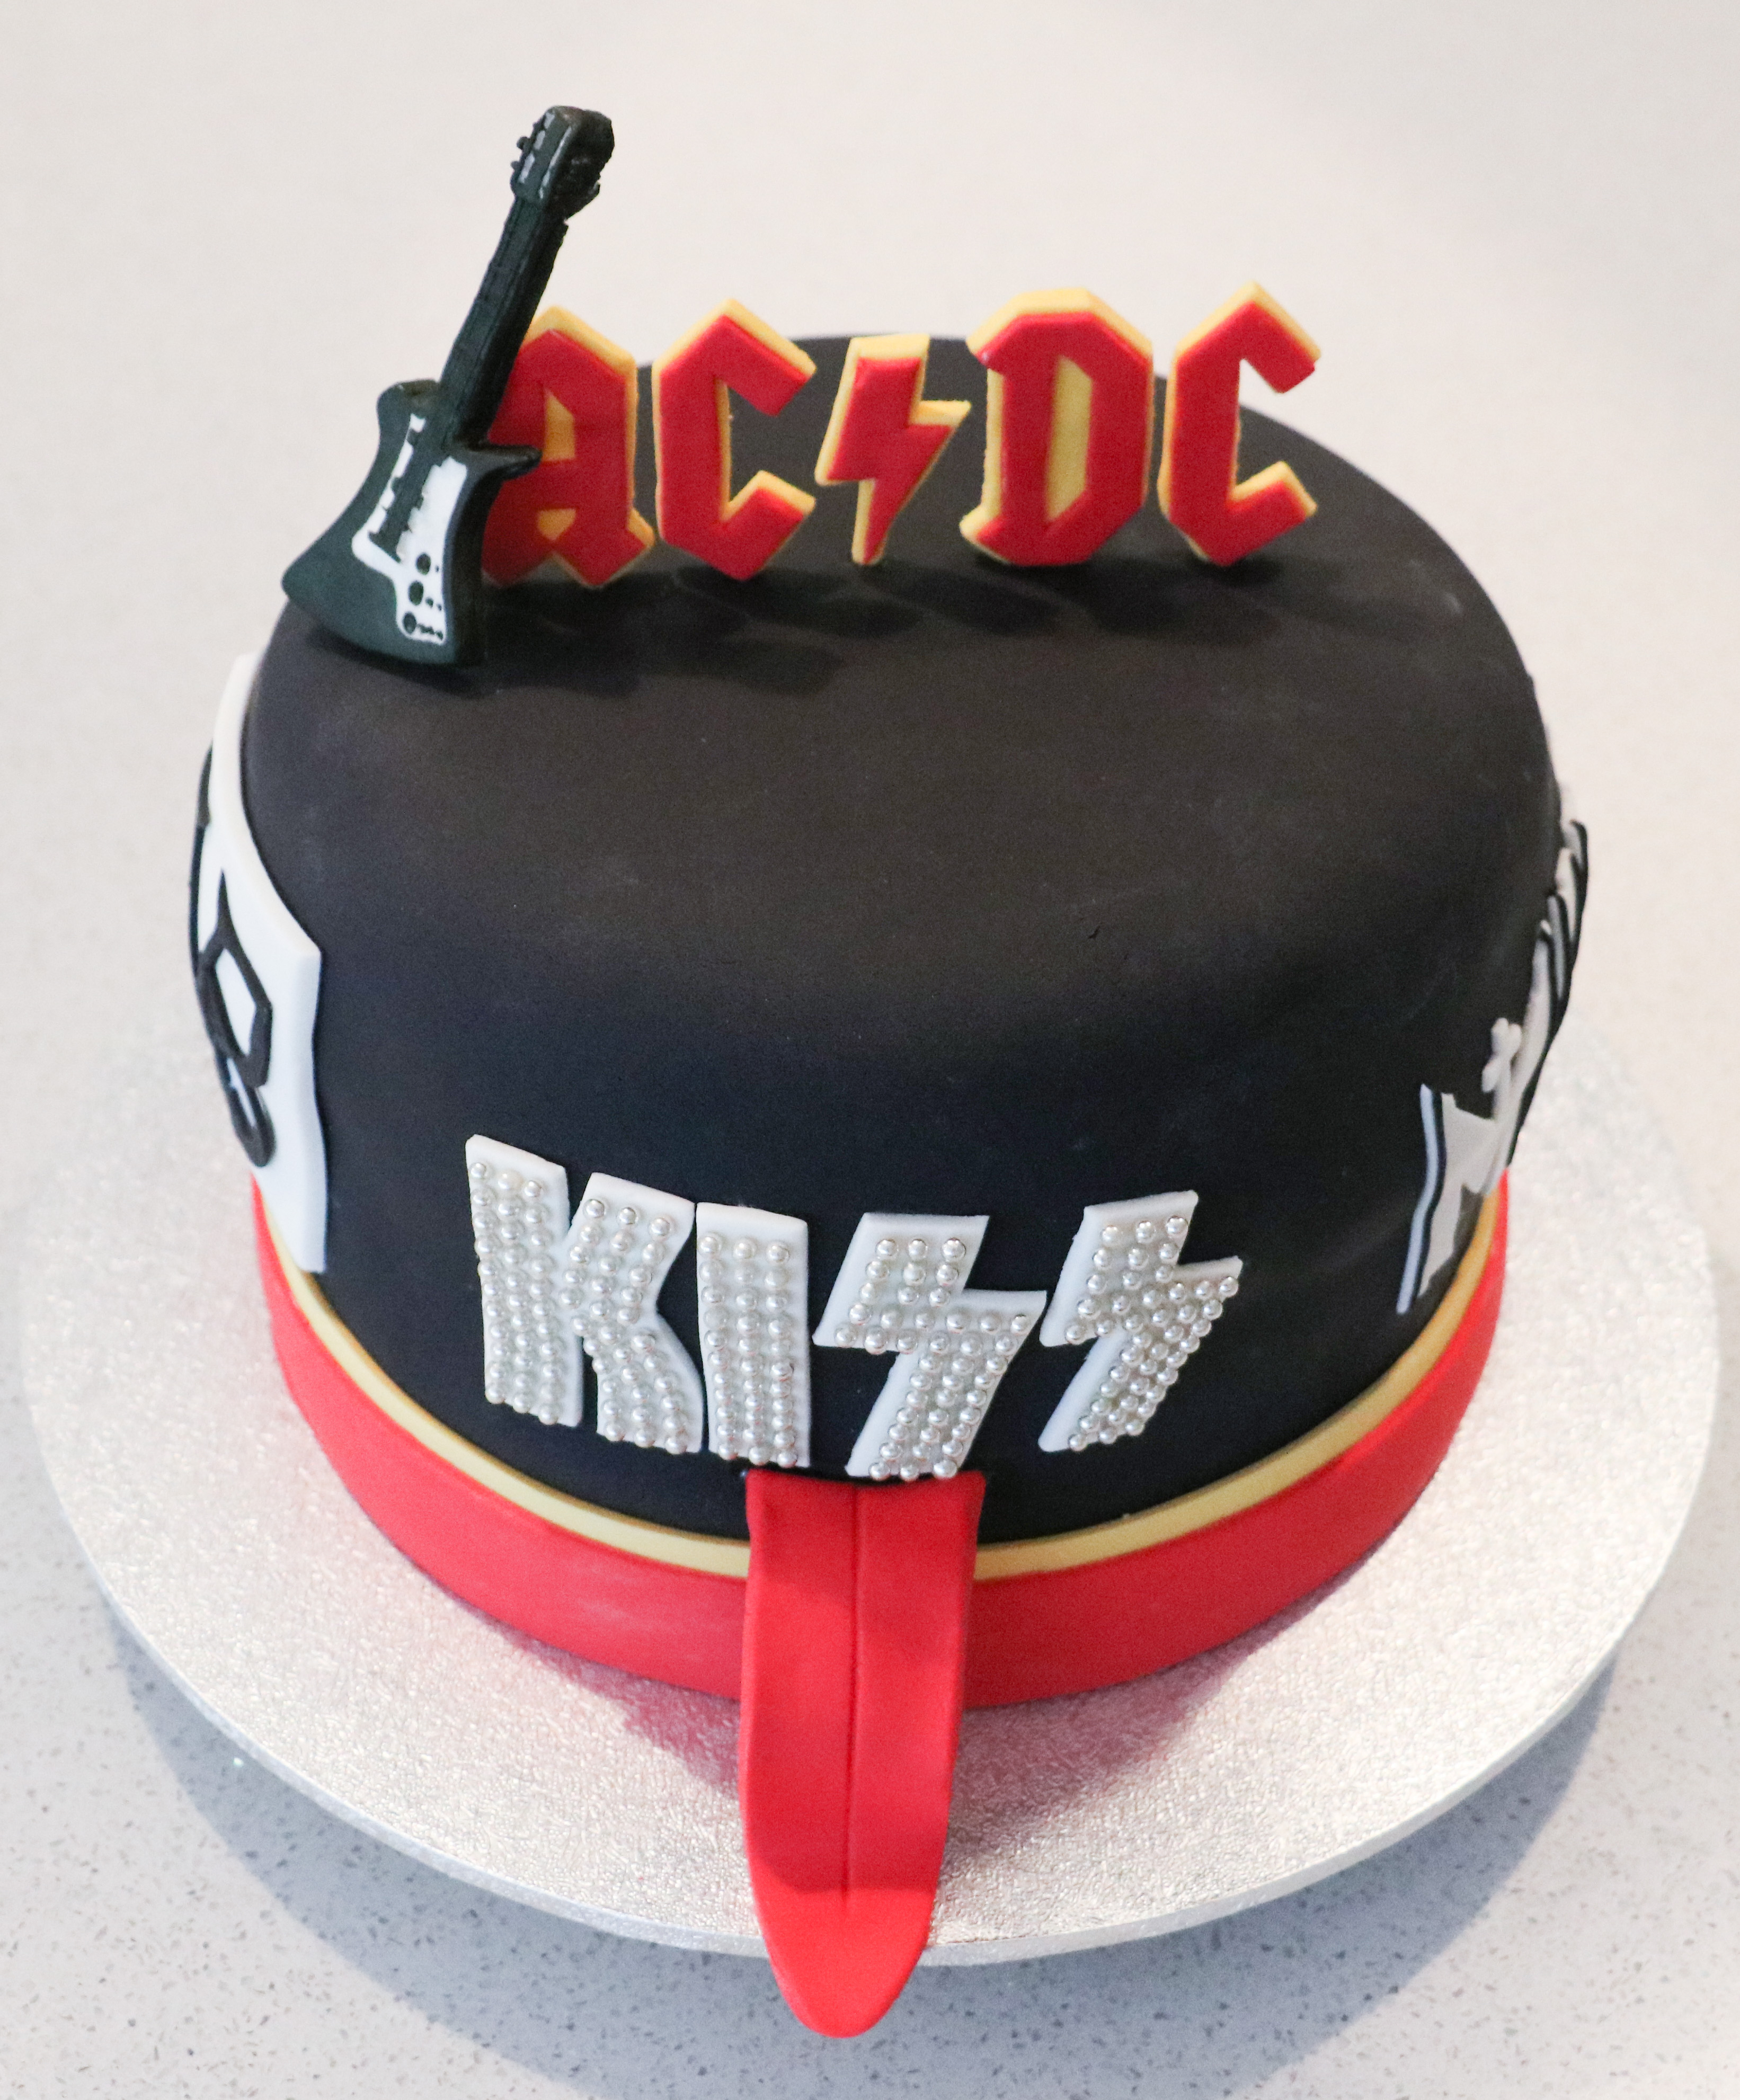 Favourite Band Cake